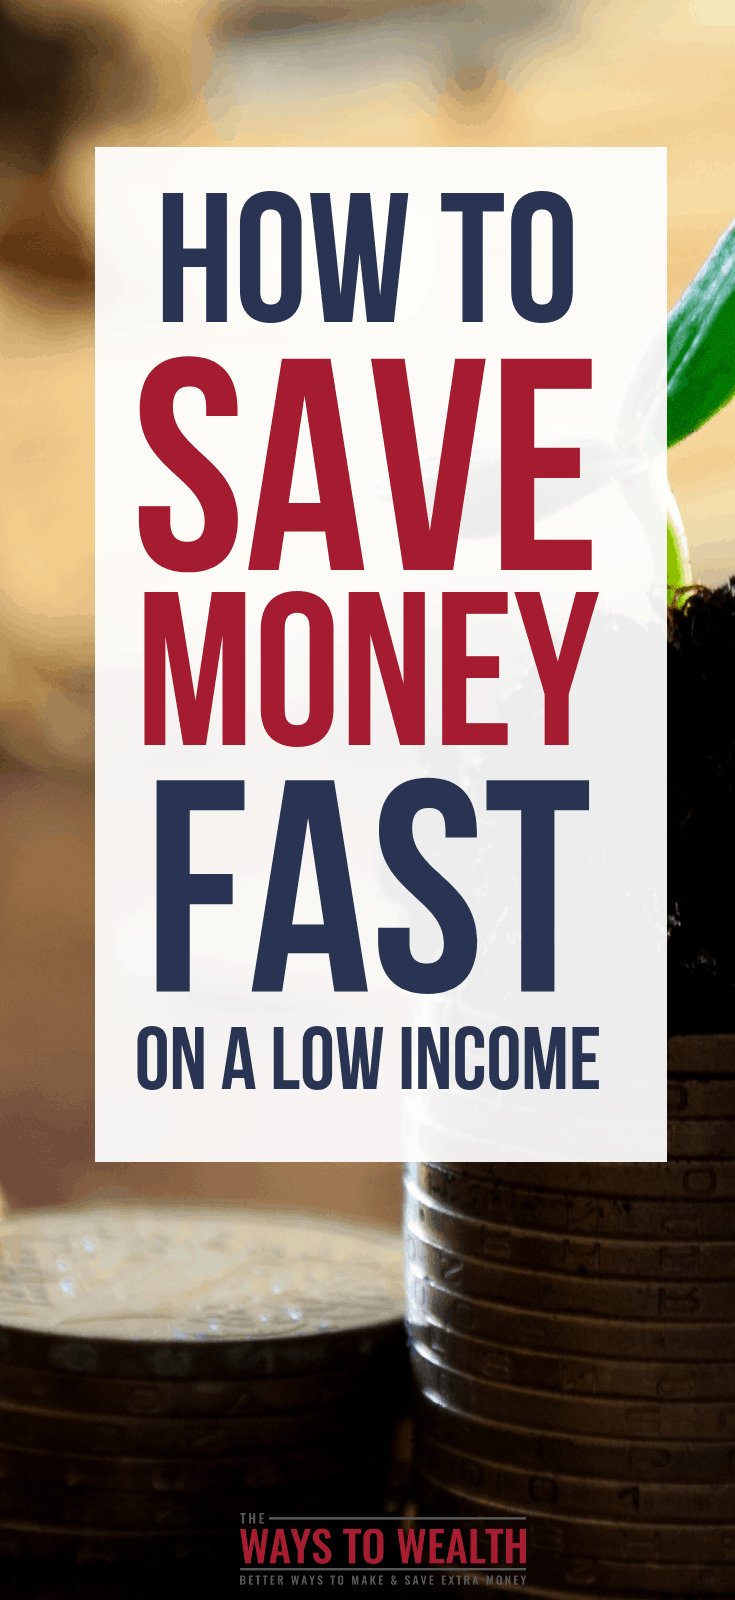 How to Save Money Fast on a Low Income